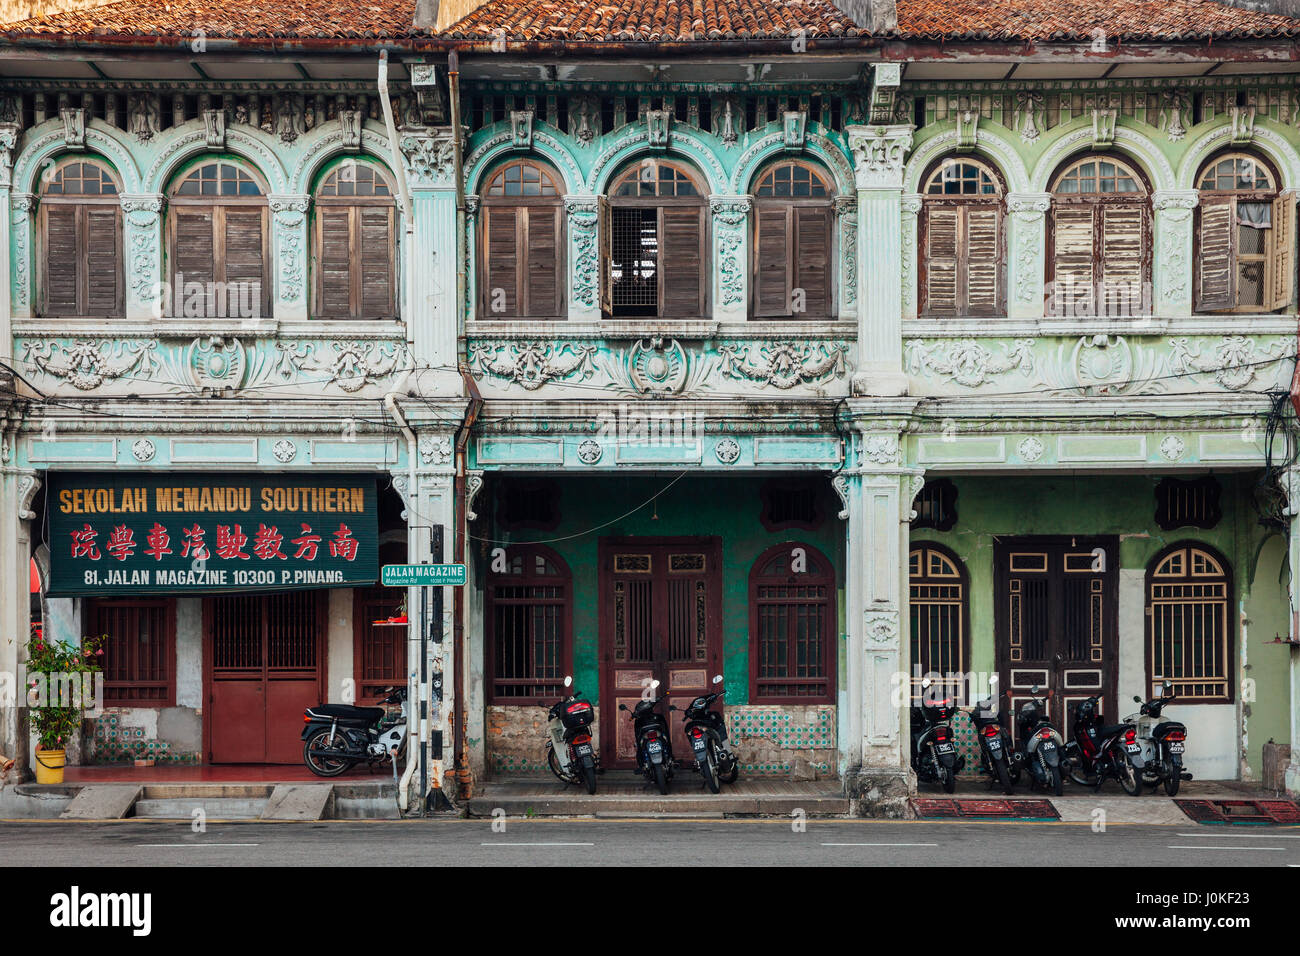 George Town, Malaysia - March 27, 2016: Facade of the old building located in UNESCO Heritage Buffer Zone, George Stock Photo